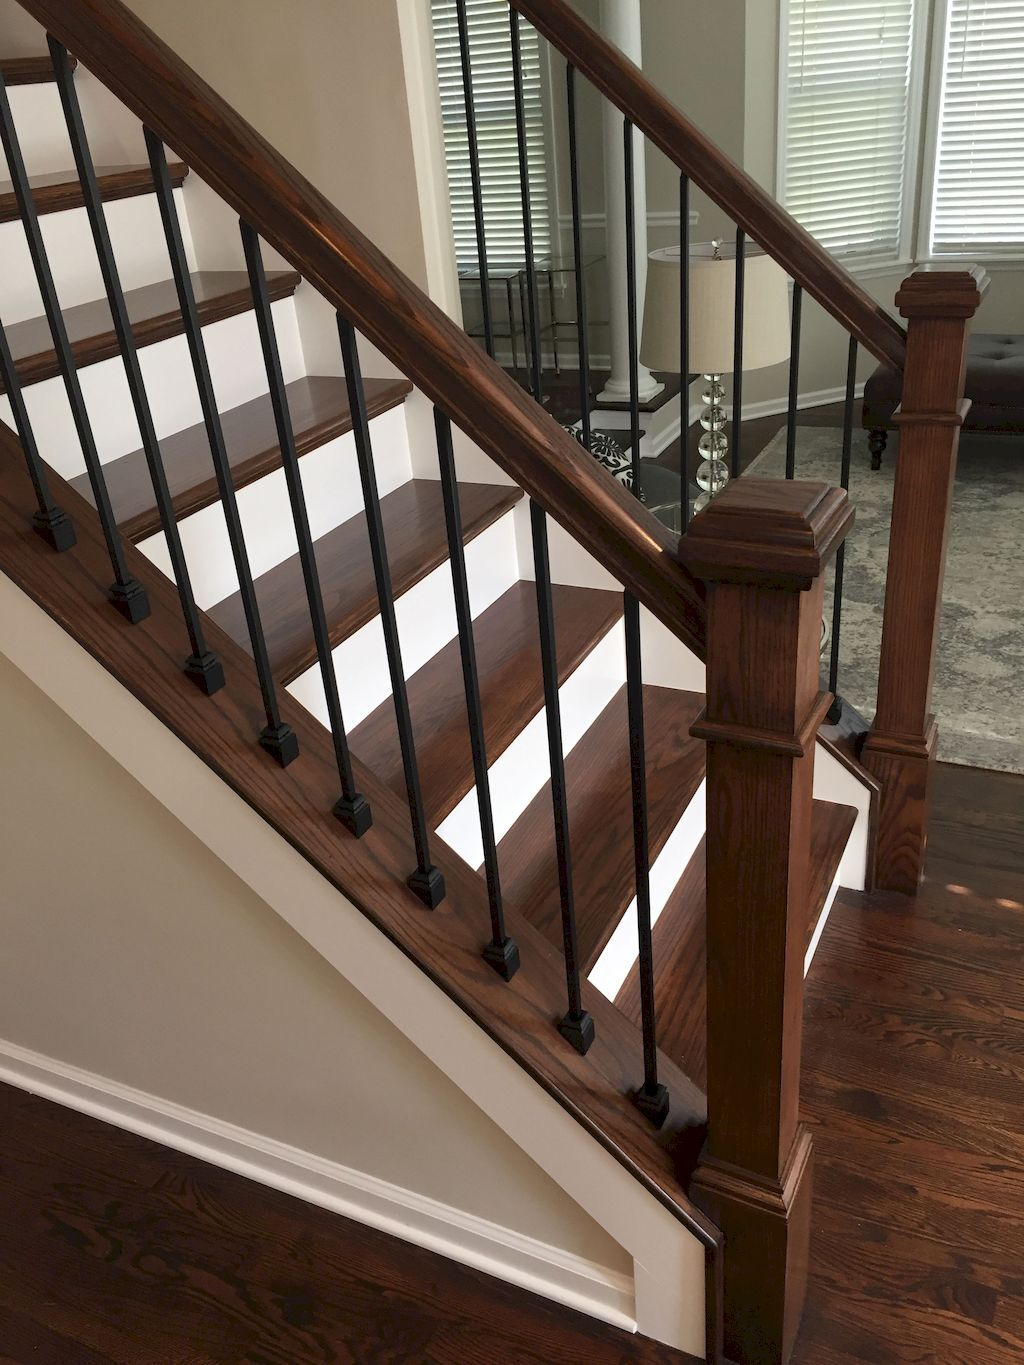 Staircase Railing221 - Home to Z #staircaserailings